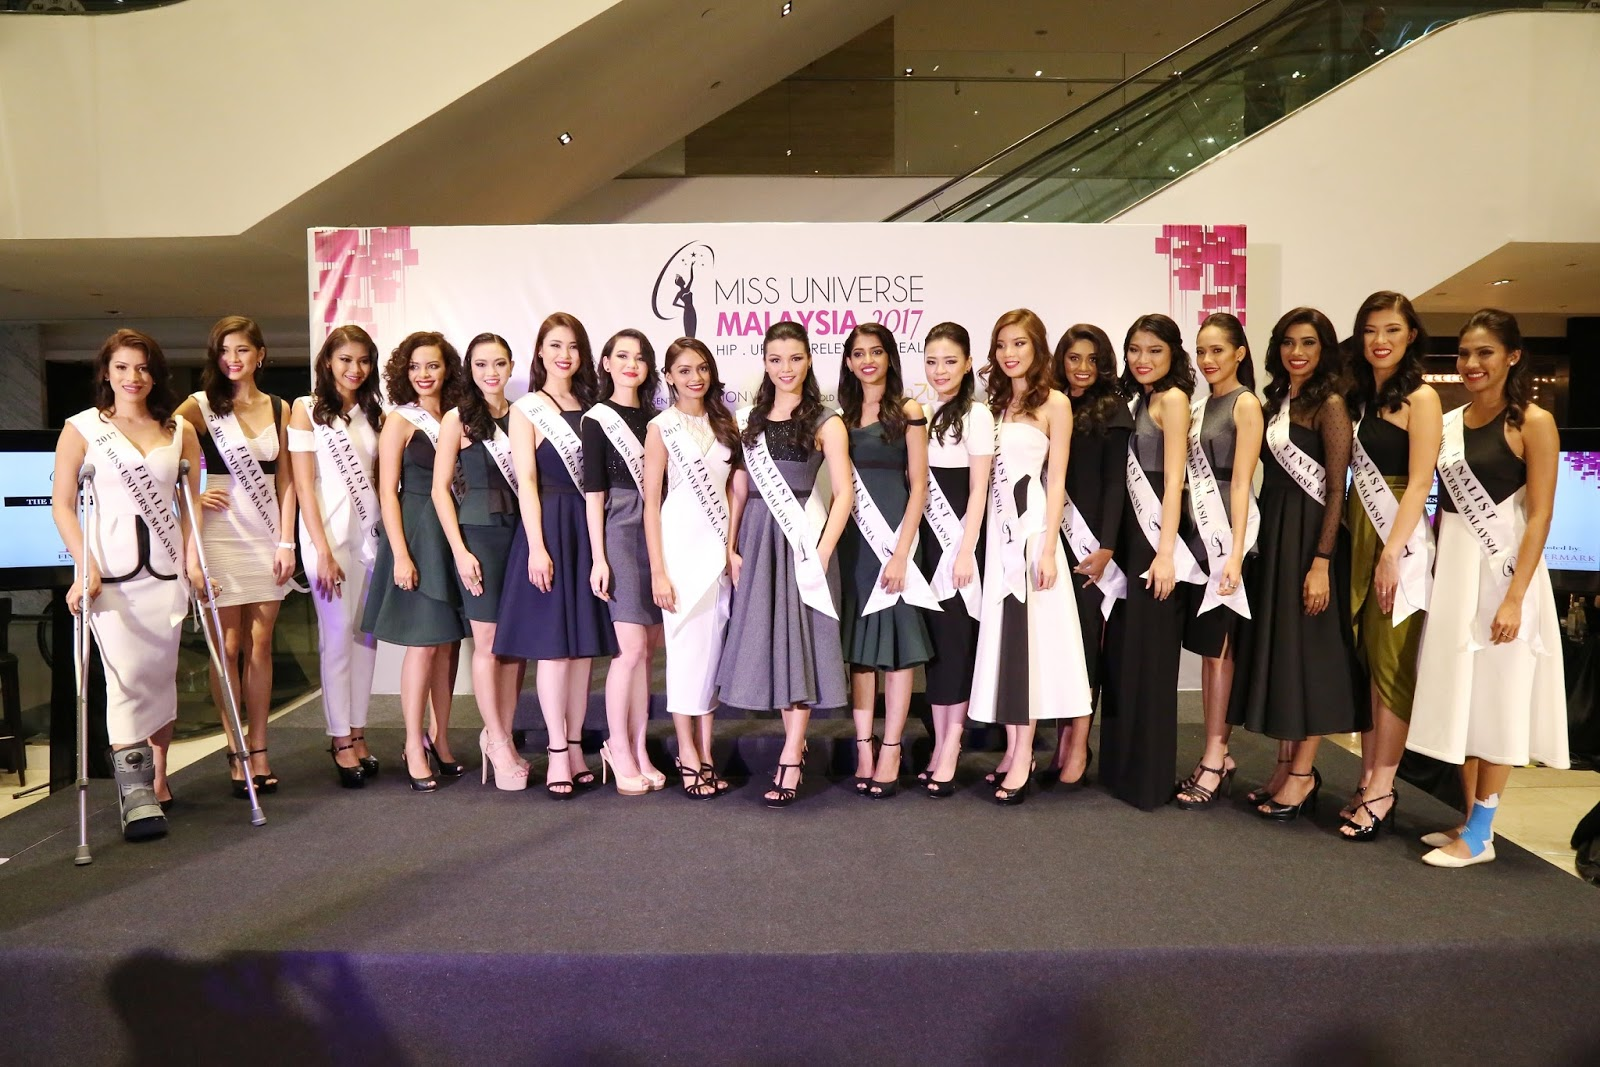 These are the Top 18 finalists of Miss Universe Malaysia 2017